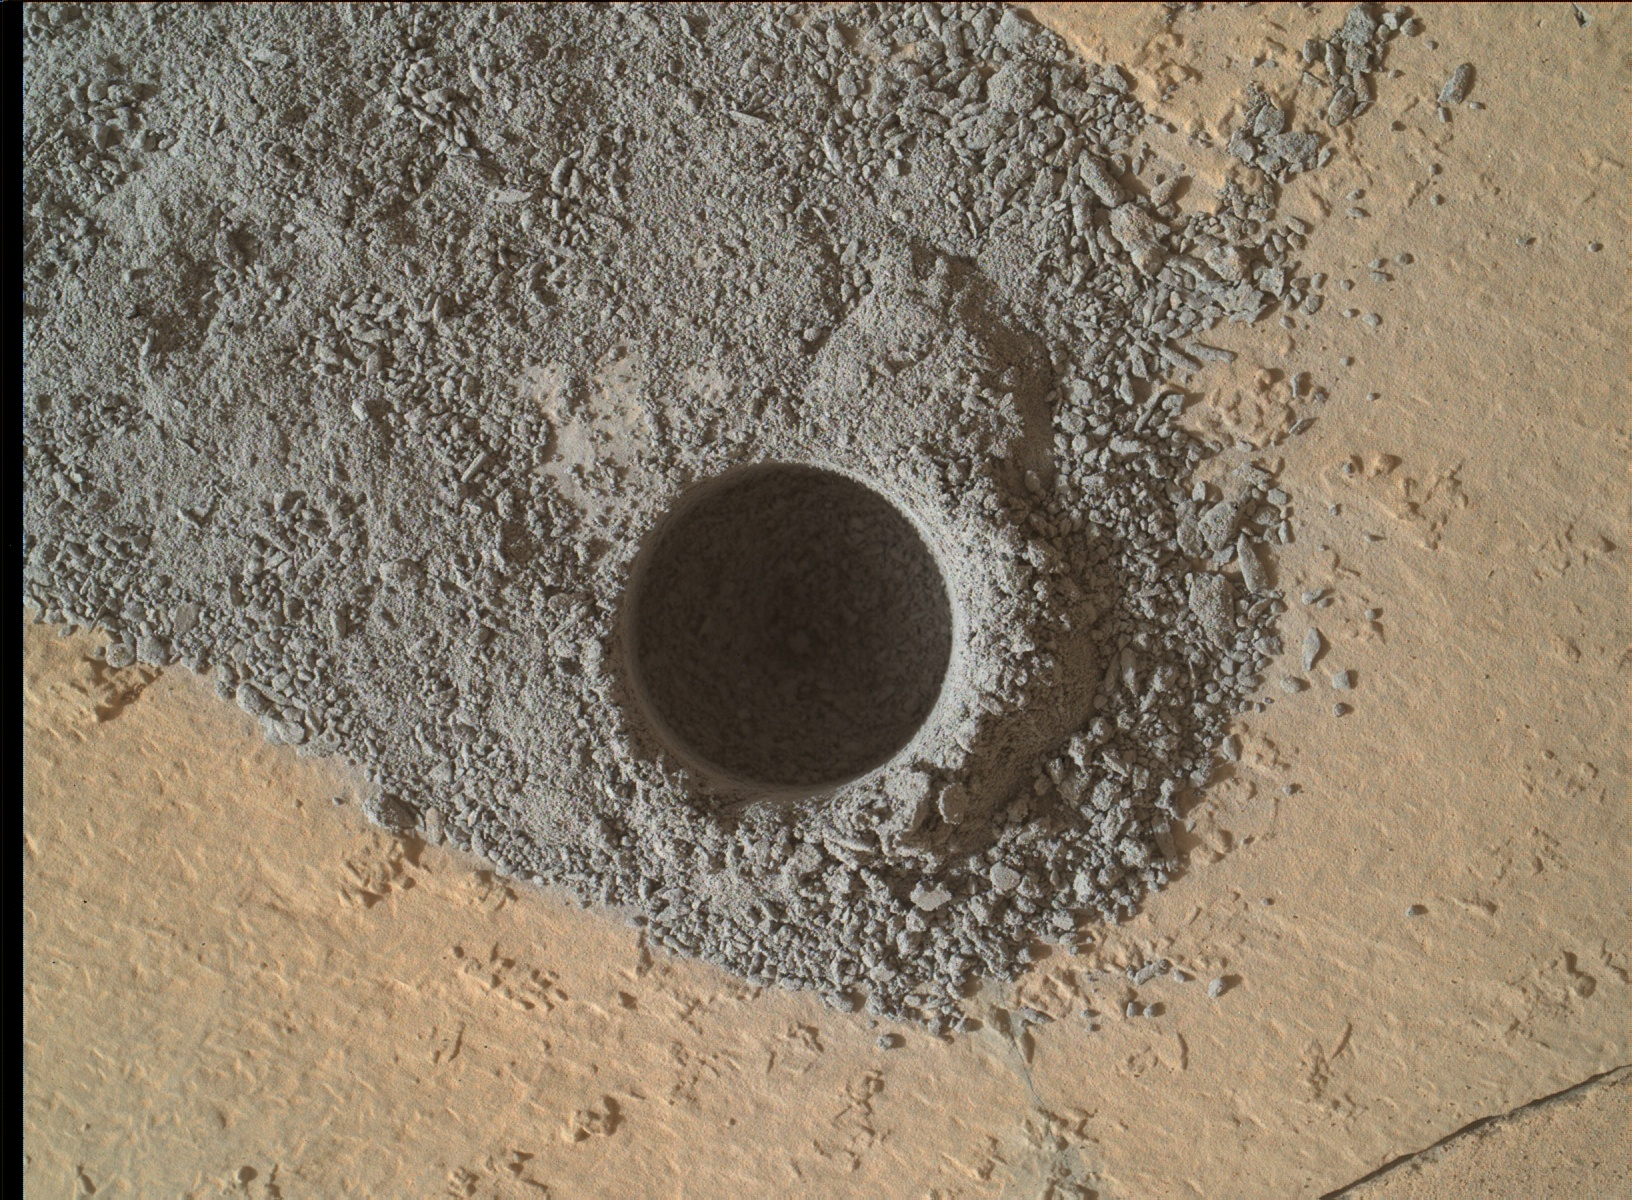 Nasa's Mars rover Curiosity acquired this image using its Mars Hand Lens Imager (MAHLI) on Sol 881